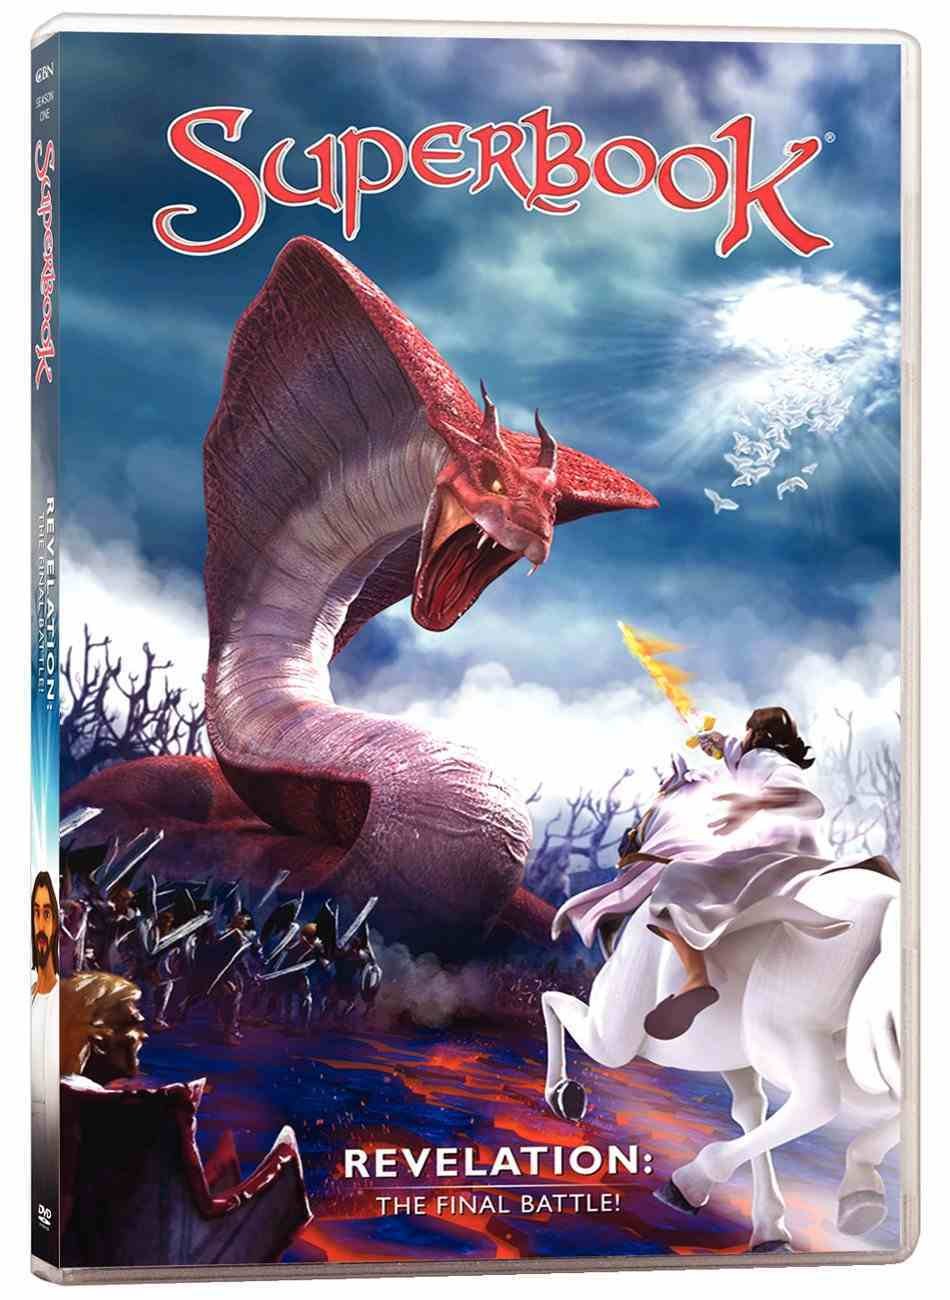 Revelation - the Final Battle (#13 in Superbook Dvd Series Season 01) DVD